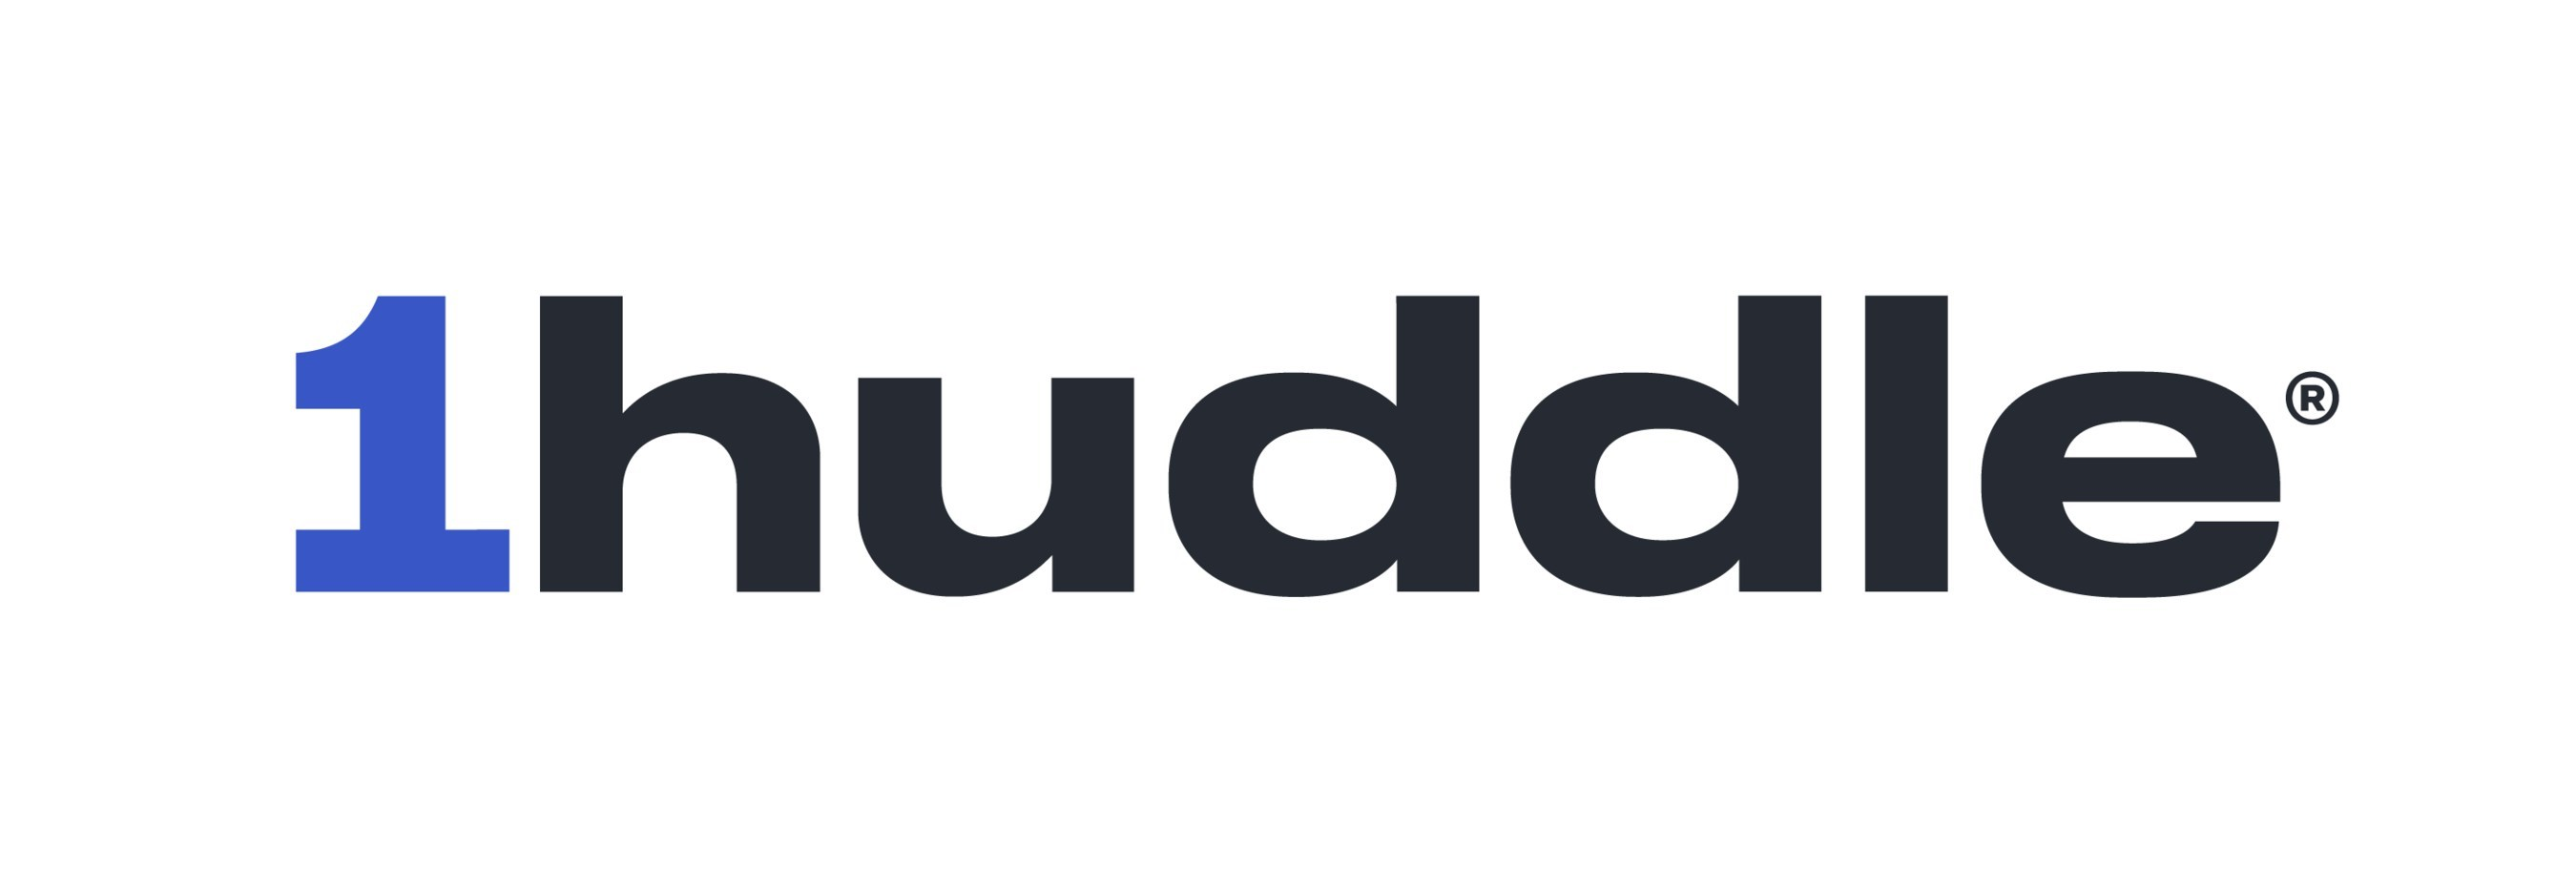 1Huddle Announces 255% Revenue Growth in First Half of 2019